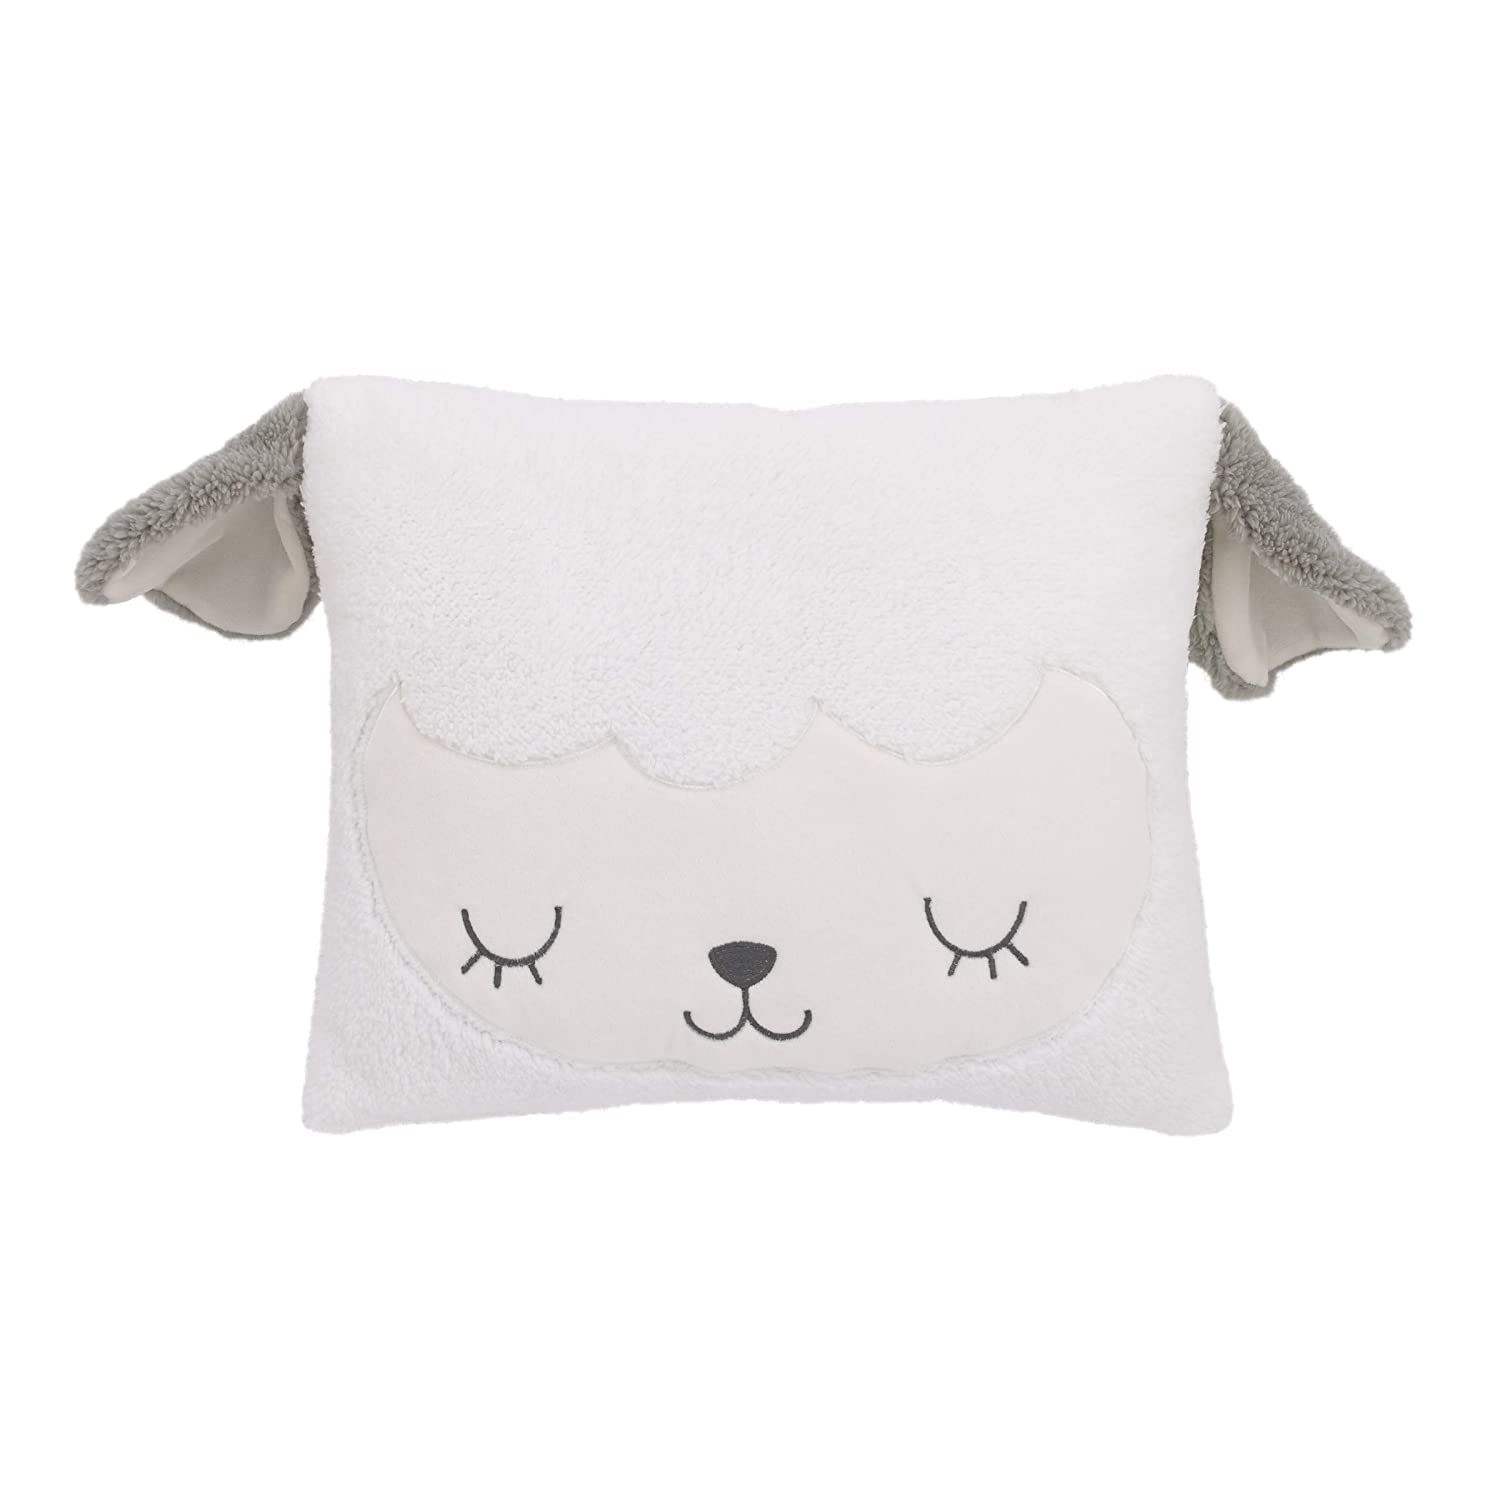 Little Love by NoJo White and Grey Soft Sherpa Lamb Shaped Decorative Pillow with 3D Ears